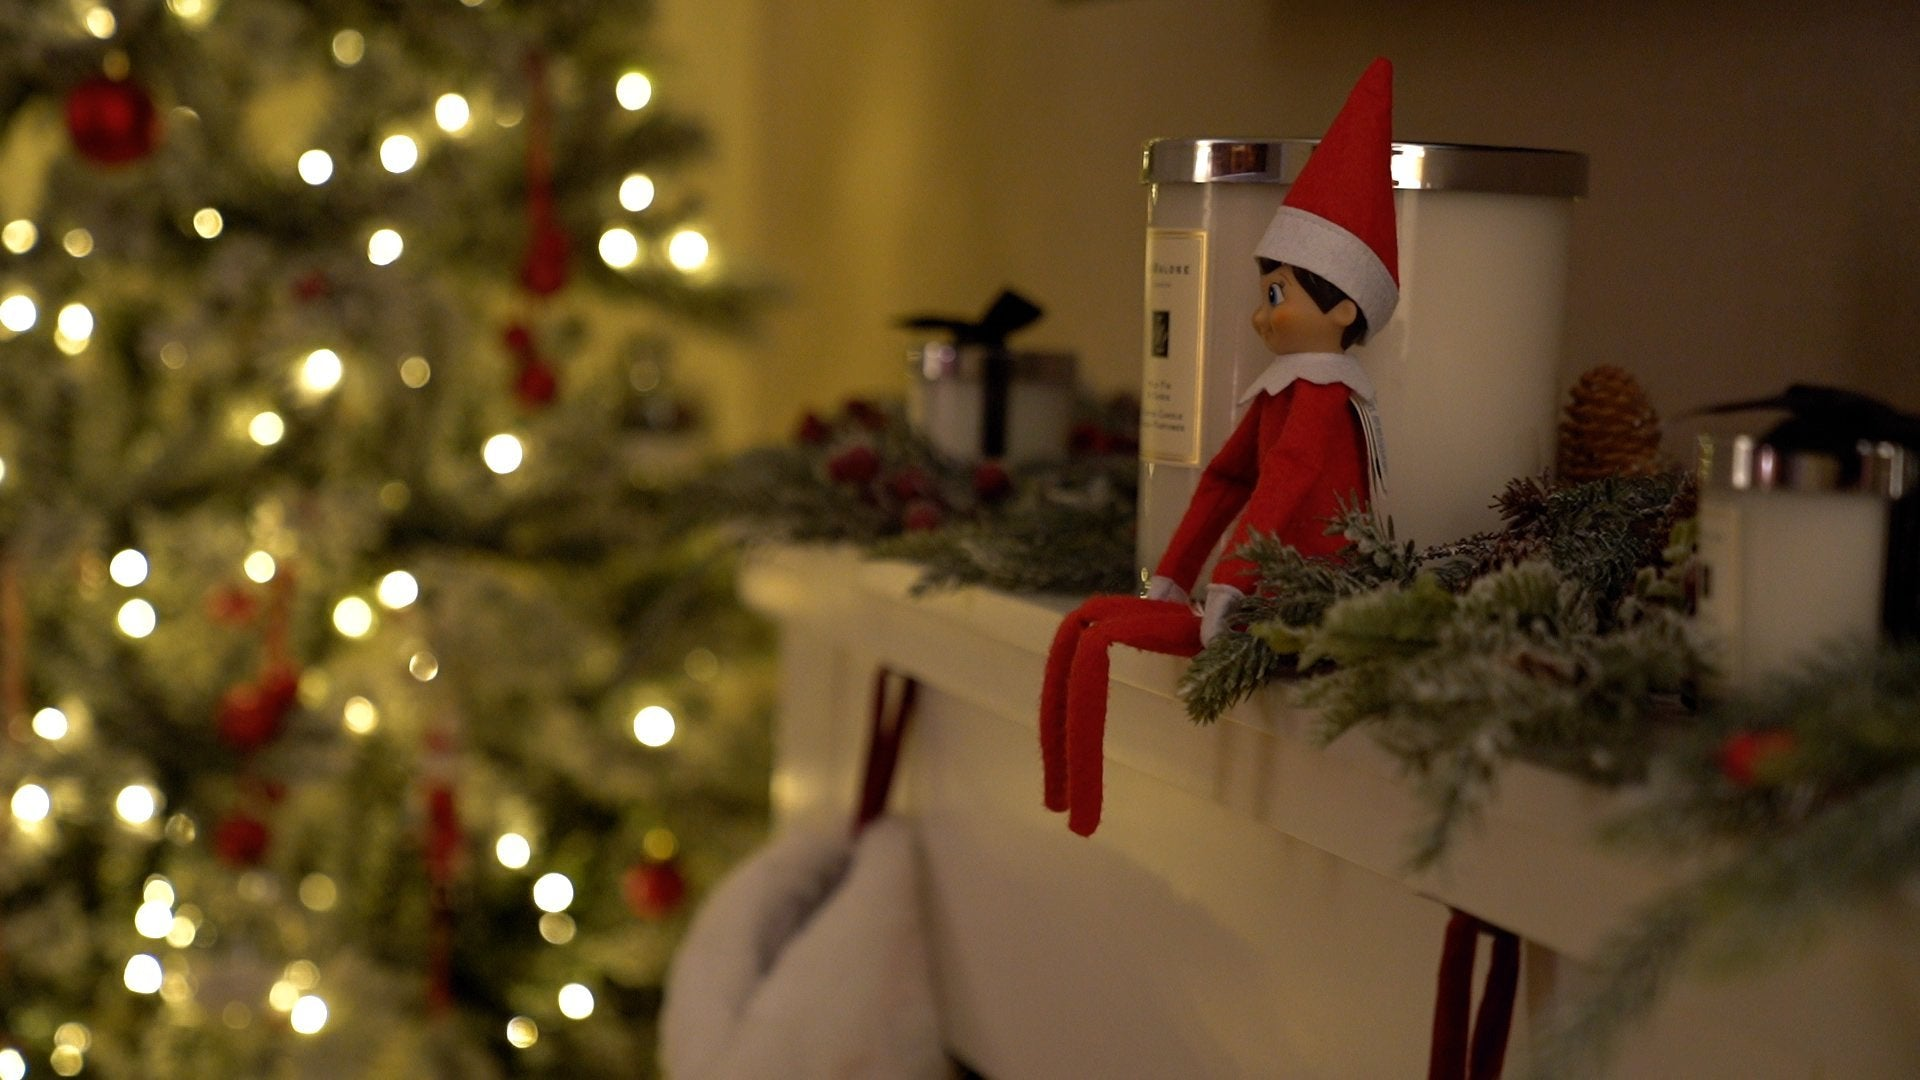 Elf on the shelf delivery and video message from Father Christmas